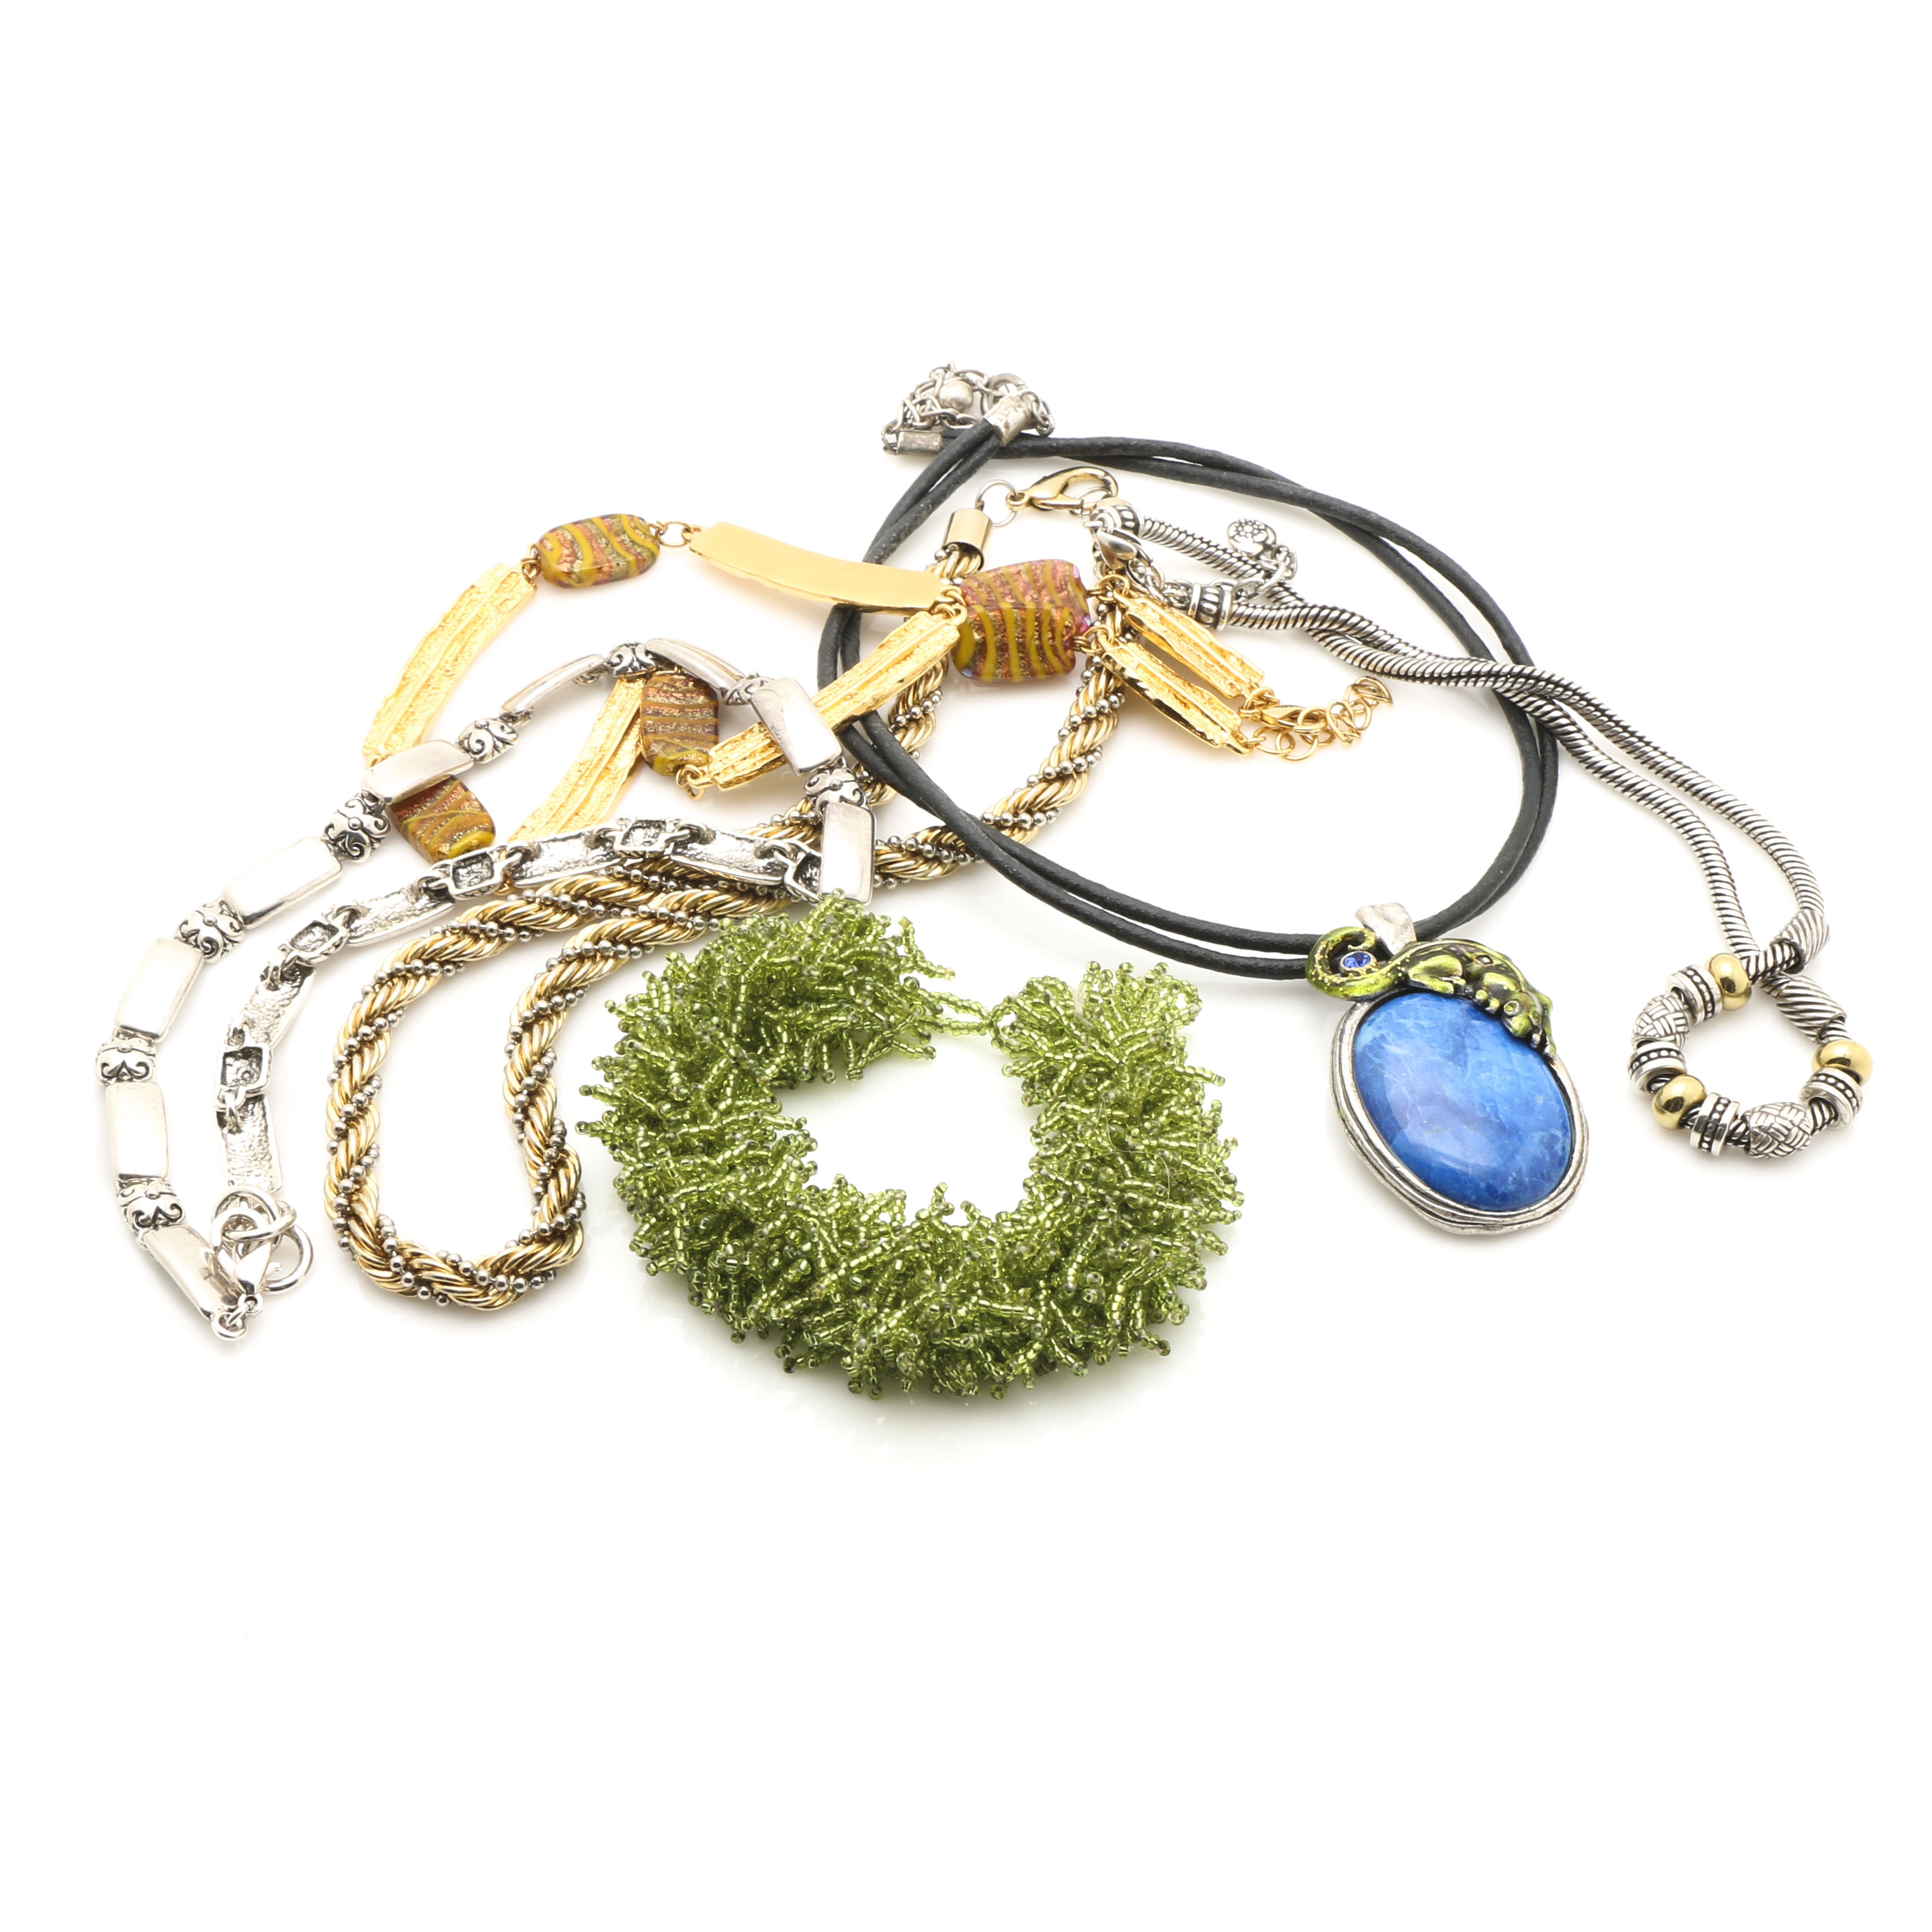 Silver and Gold Tone Bracelet and Necklaces